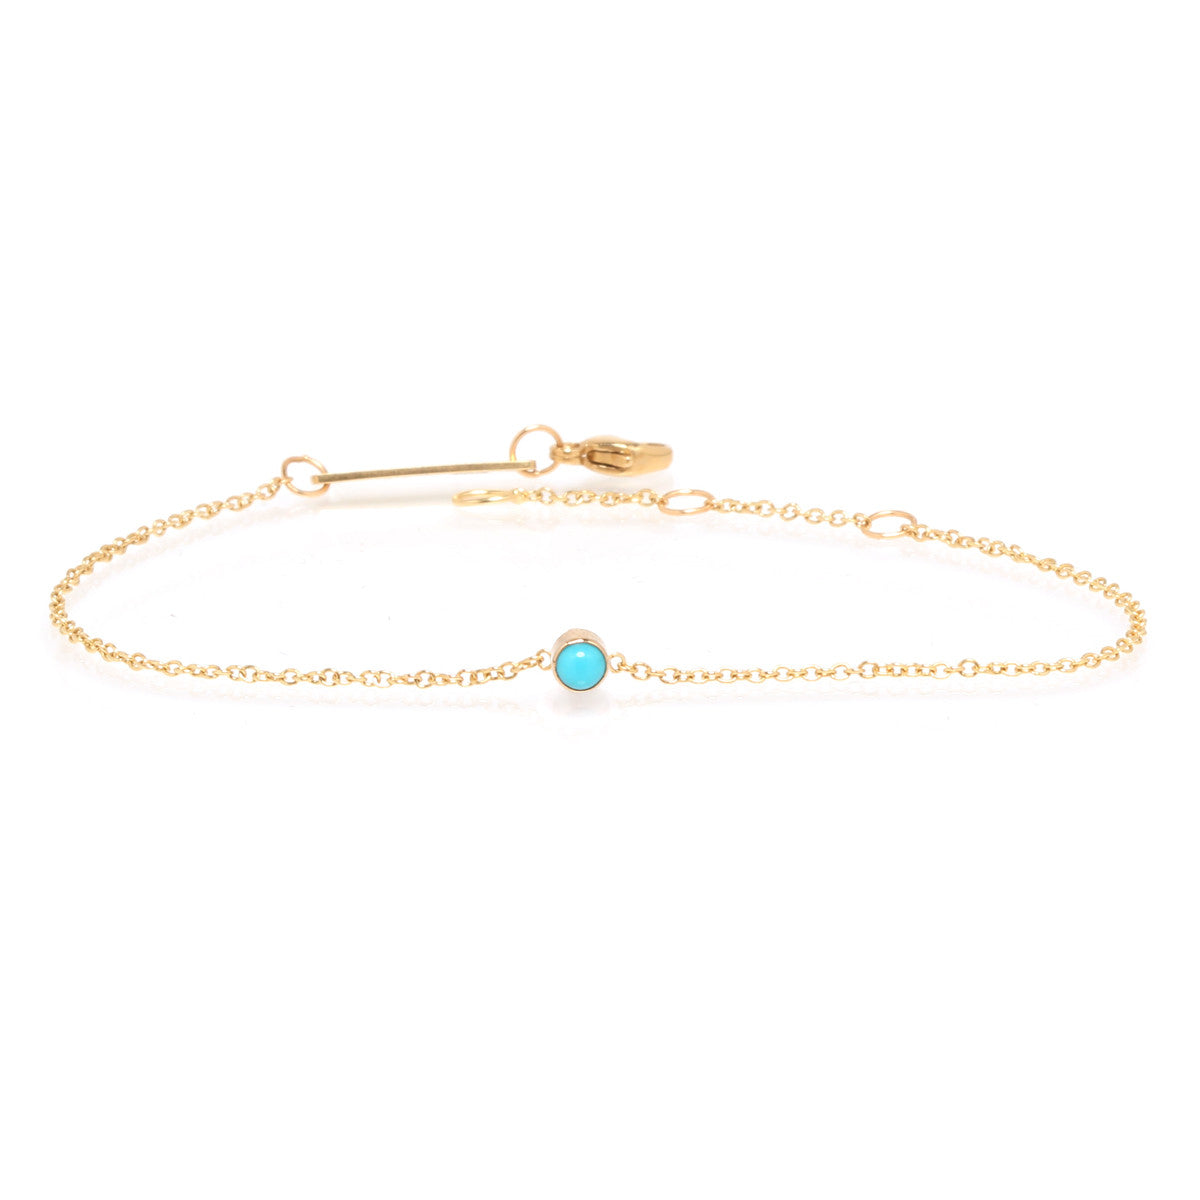 14k single bezel turquoise bracelet